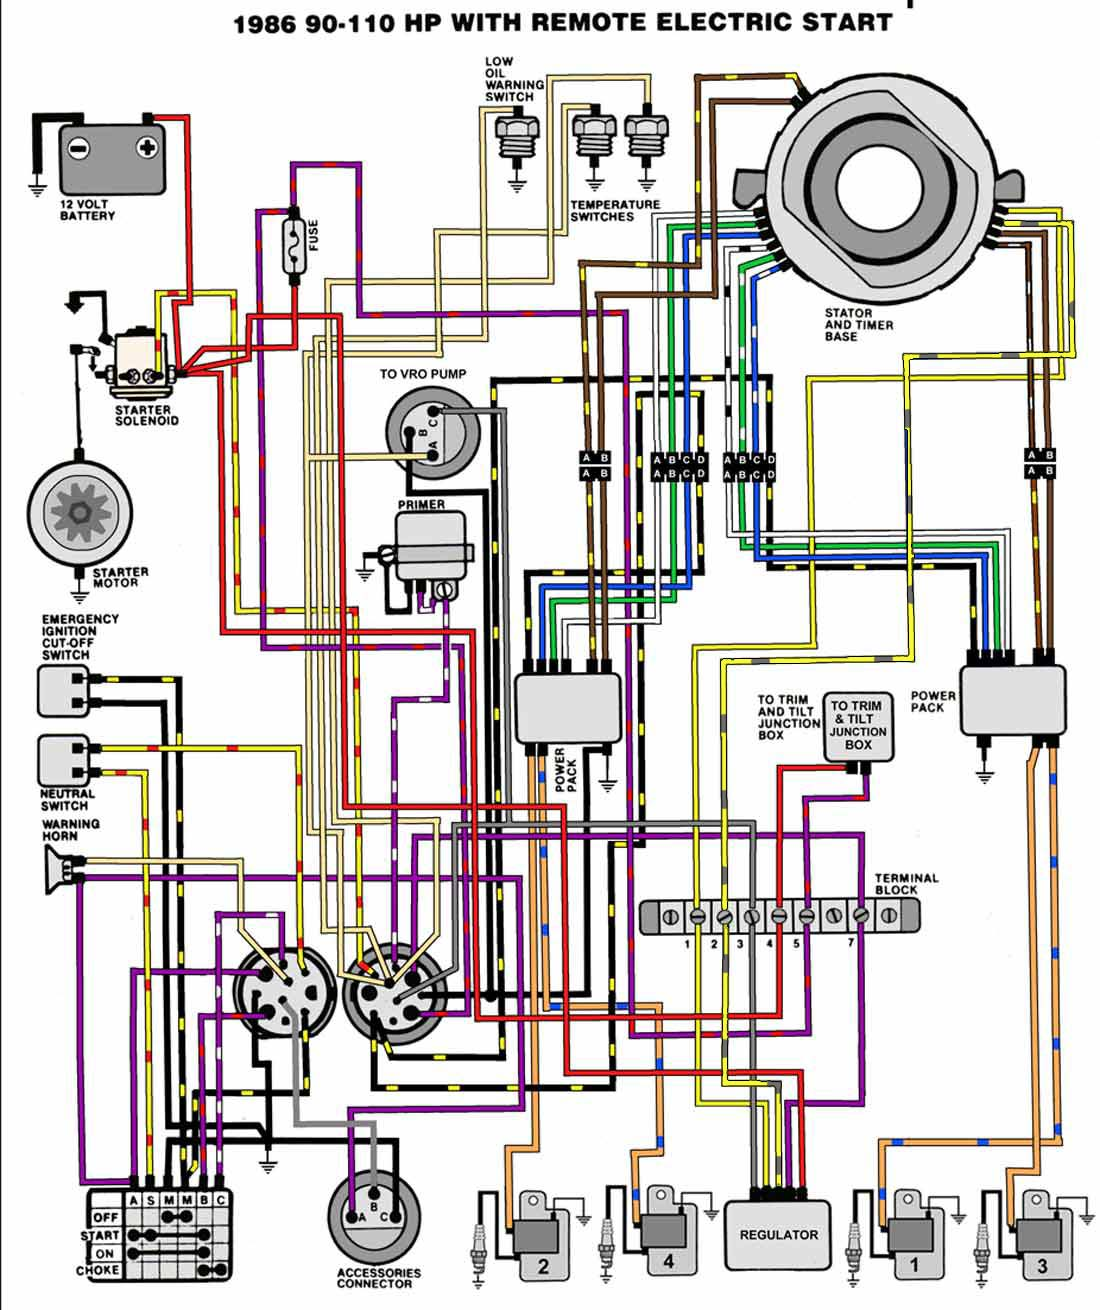 400E Force 90 Hp Wiring Diagram | Wiring ResourcesWiring Resources